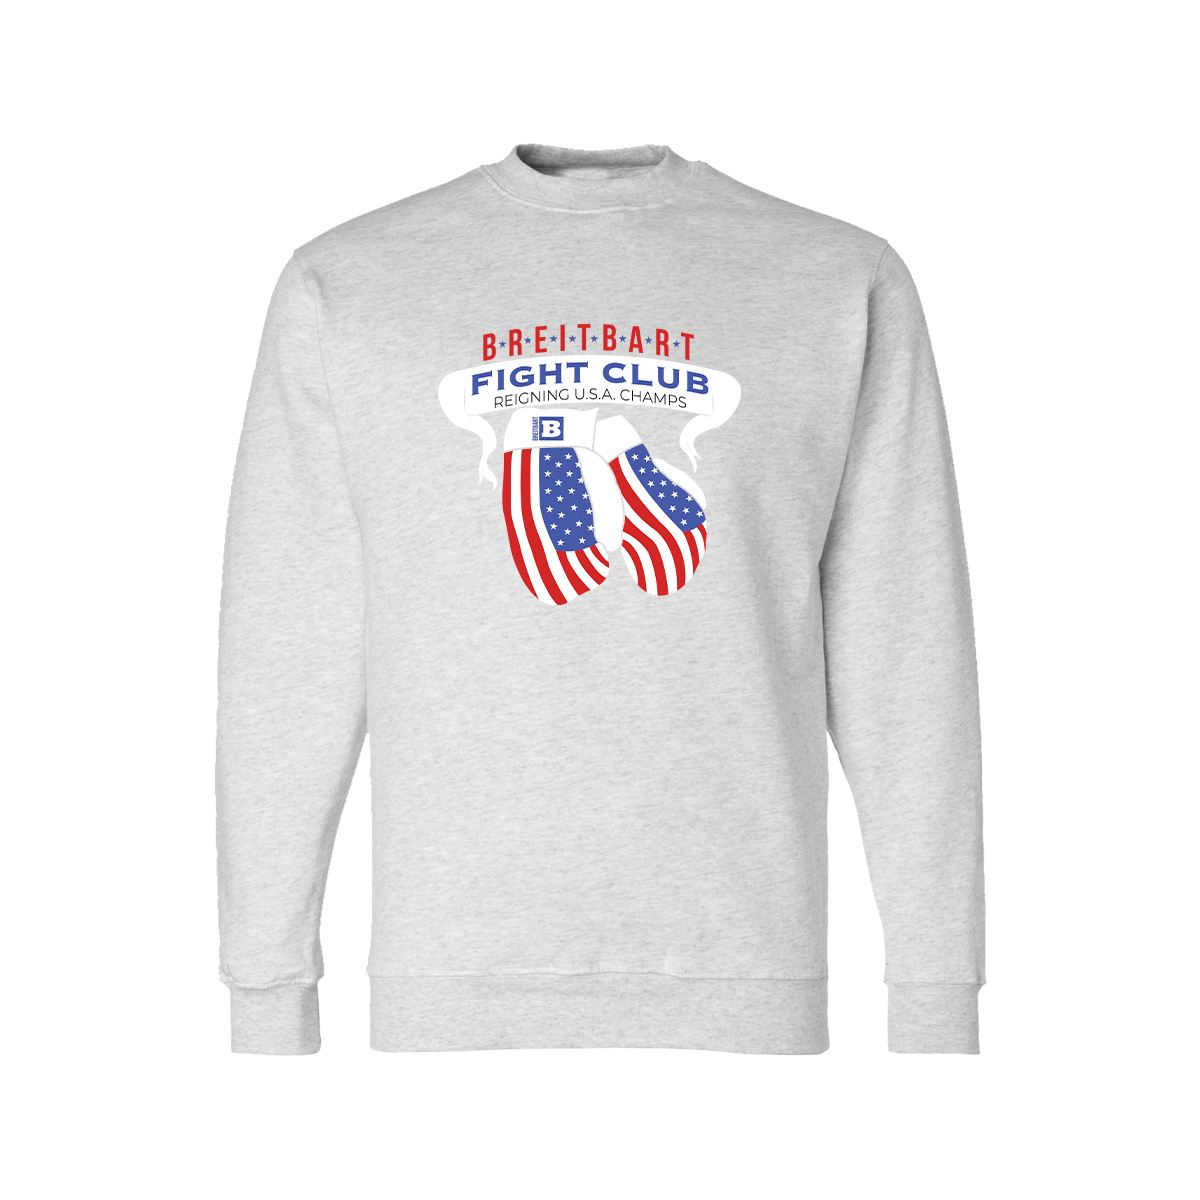 Breitbart Fight Club USA Champs Sweatshirt